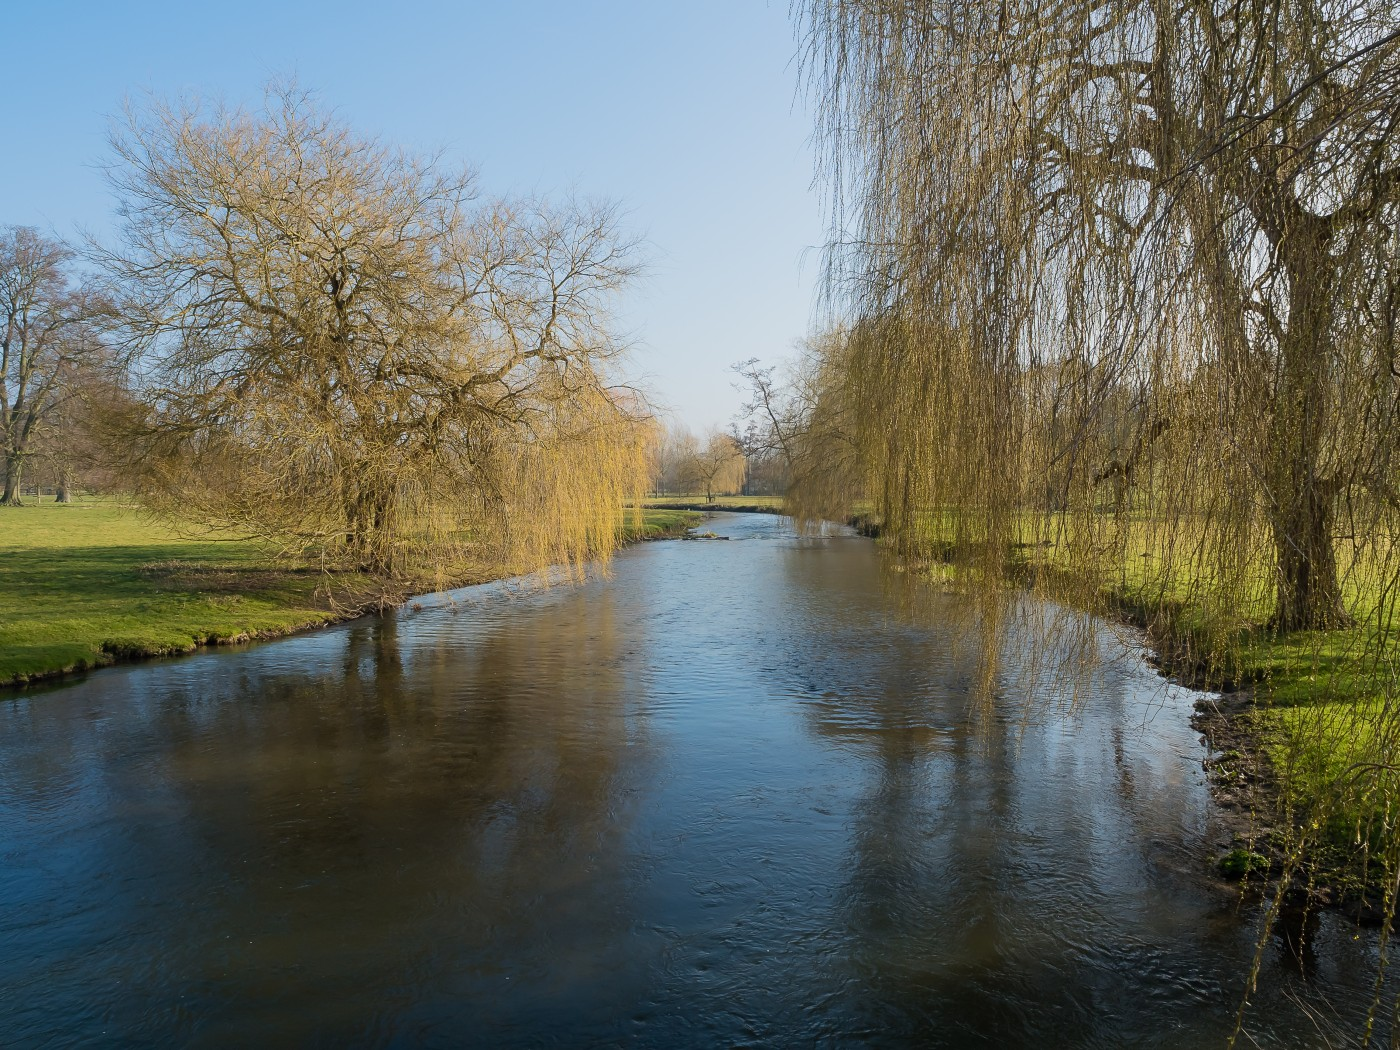 The Great Stour, Godalming: A Video Slideshow.